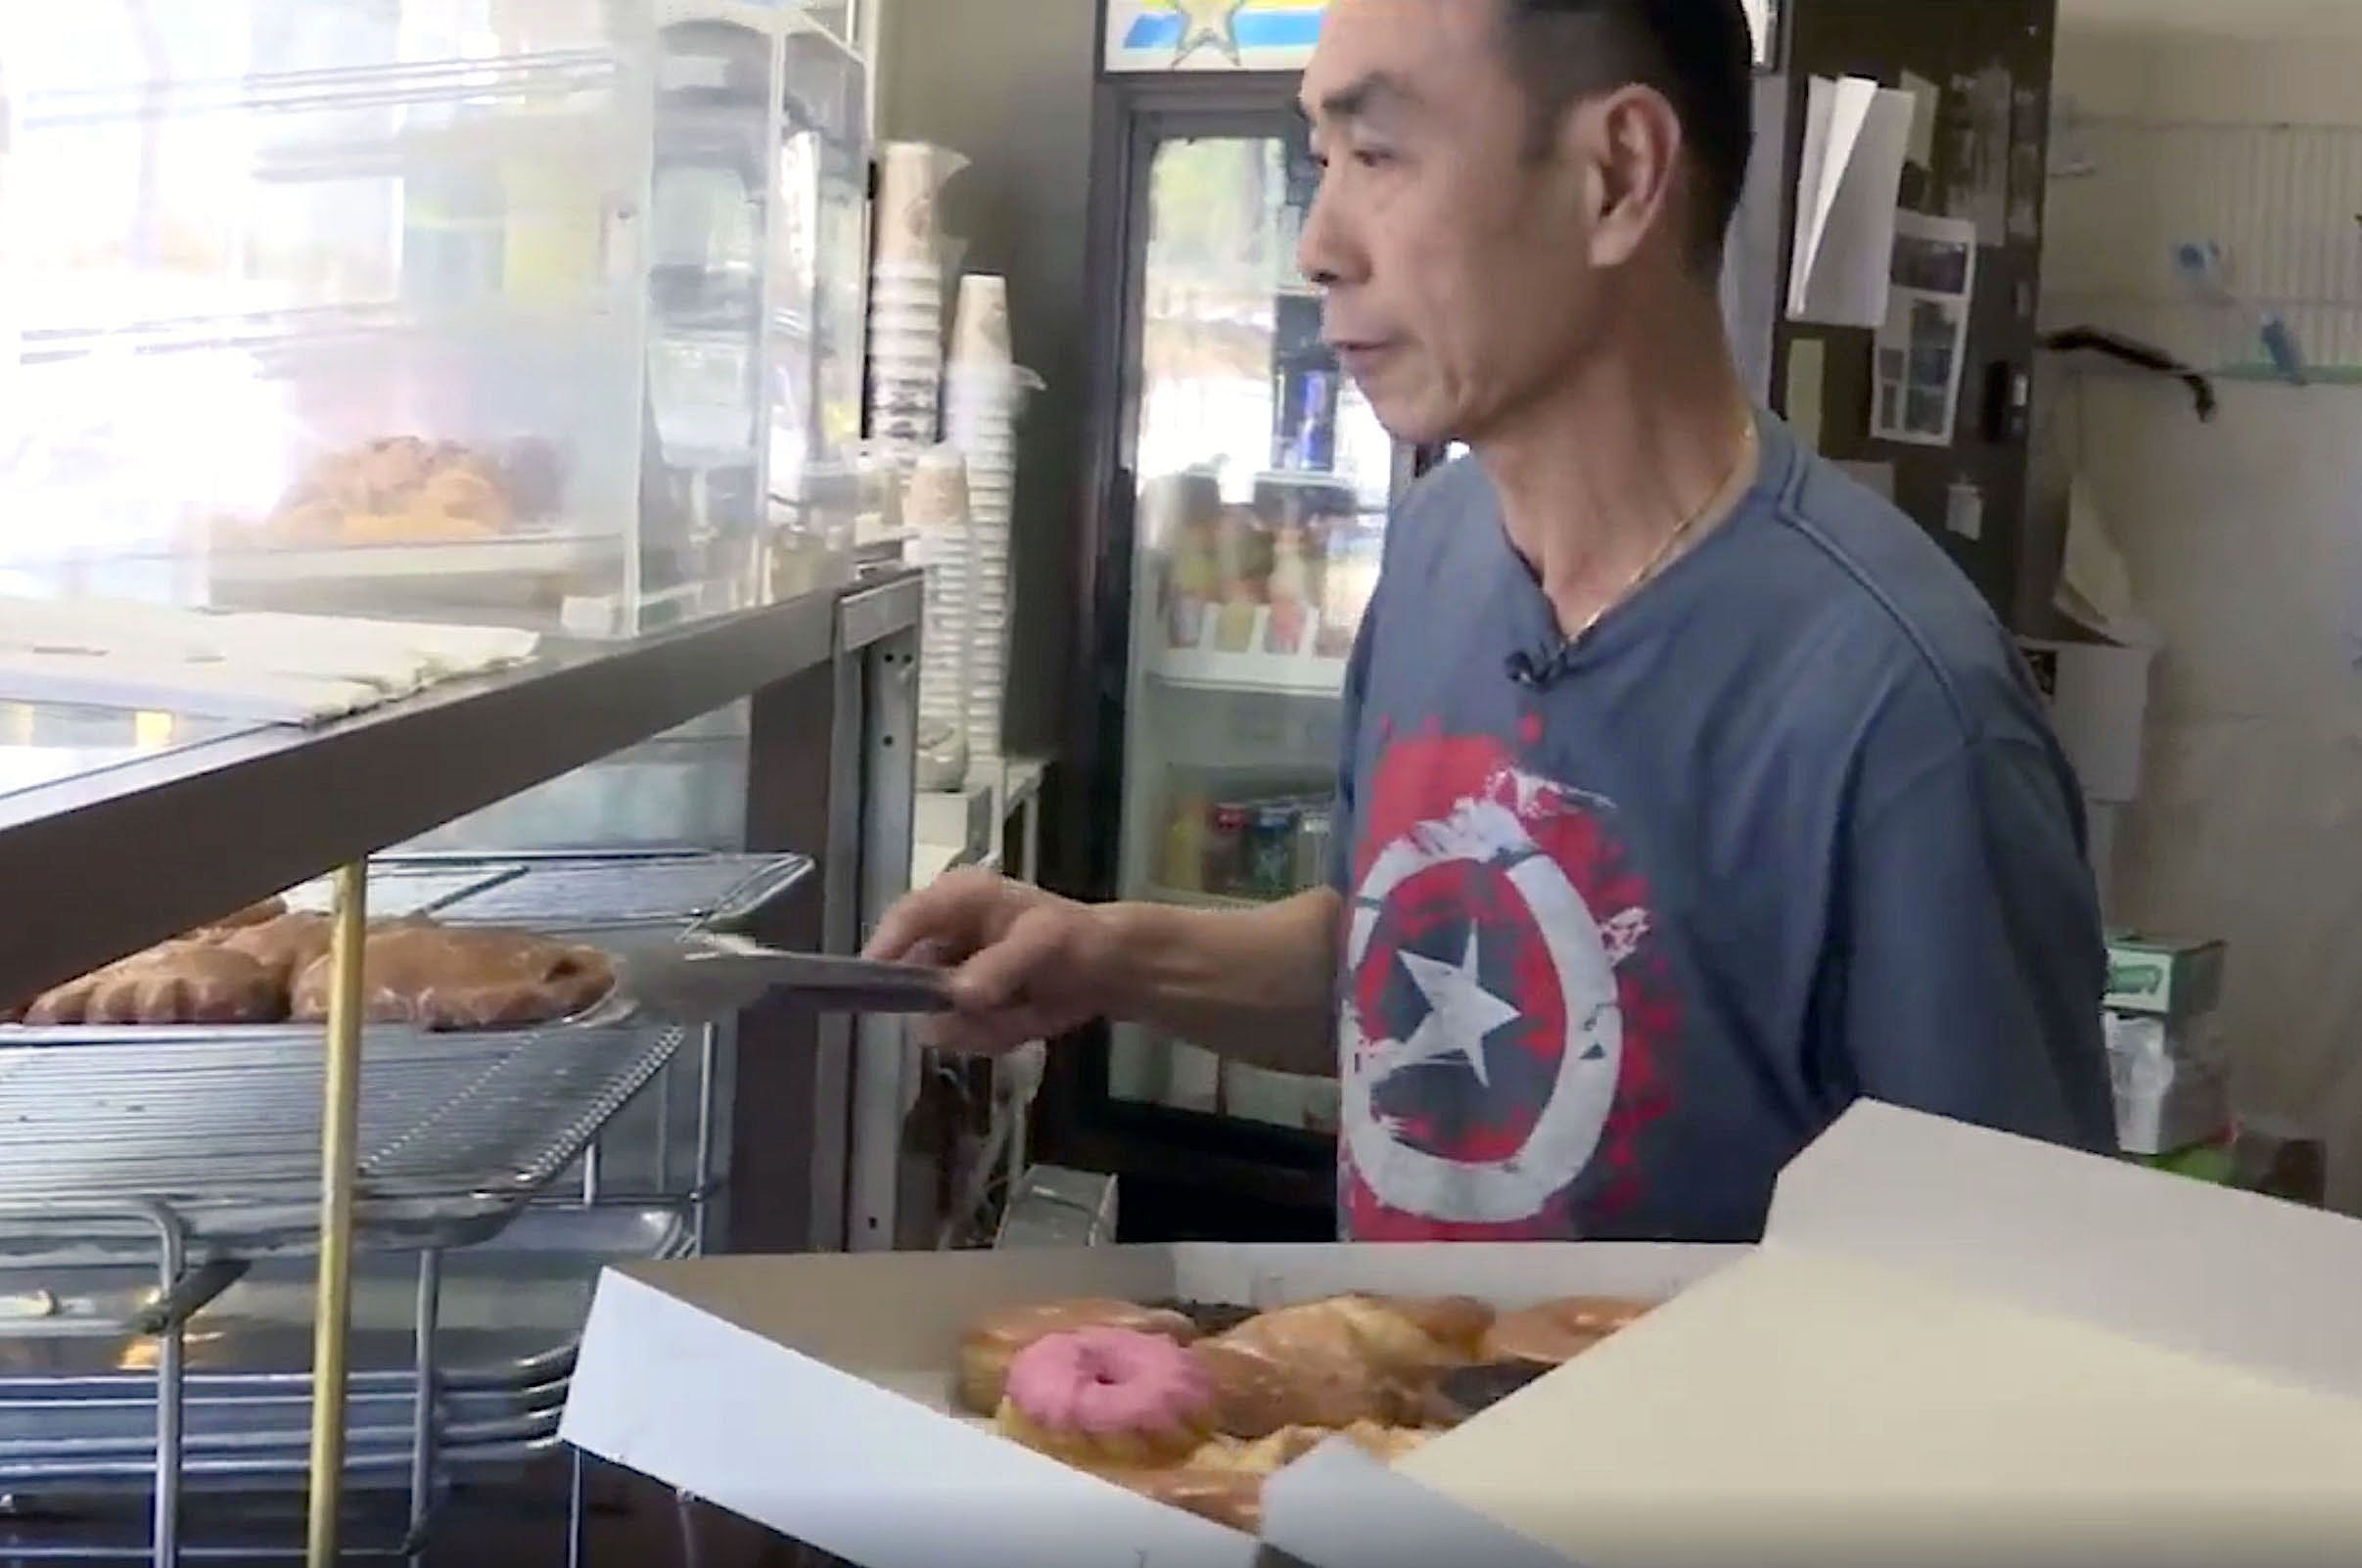 Owner of Donut City, John Chhan